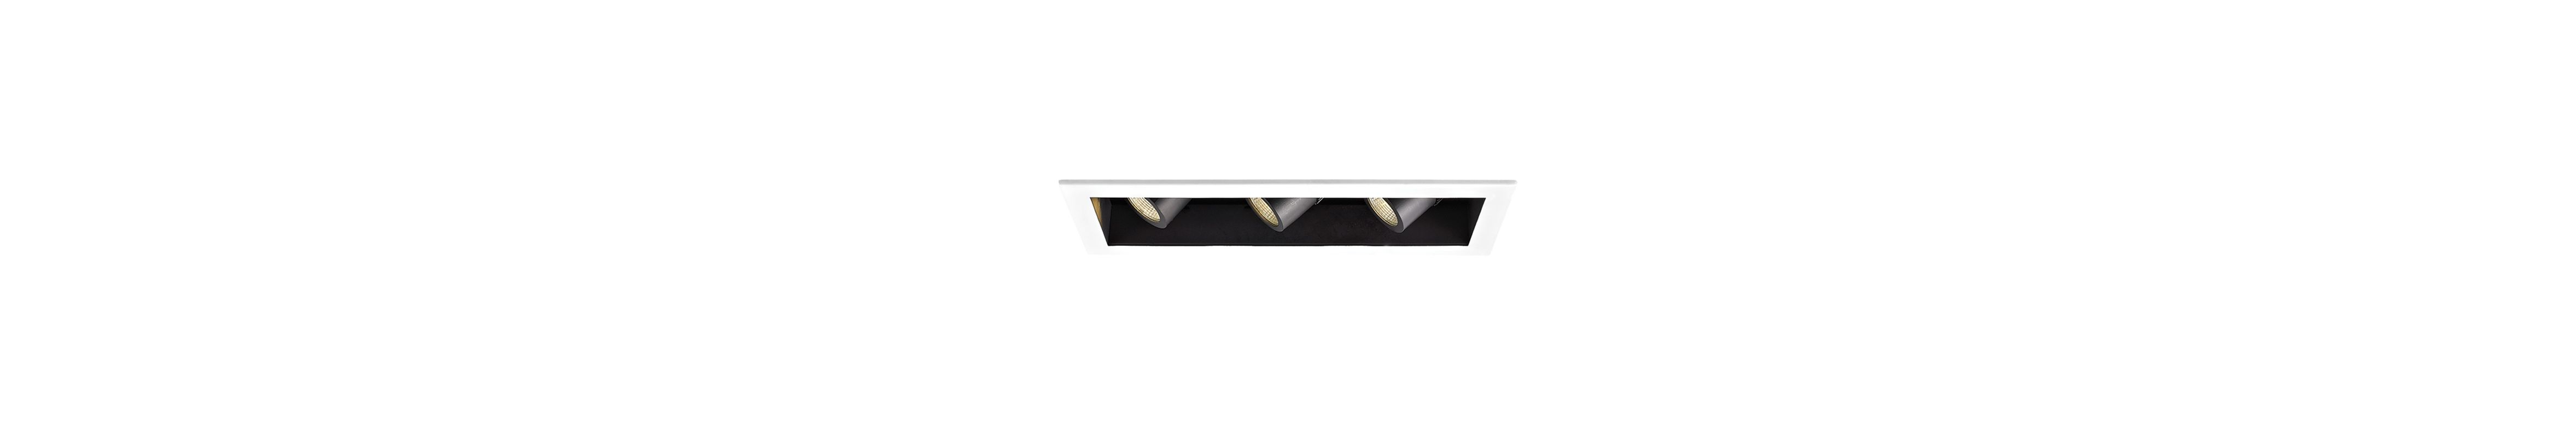 "WAC Lighting MT-4LD316N-F930 4"" Trim 3000K High Output LED Recessed"